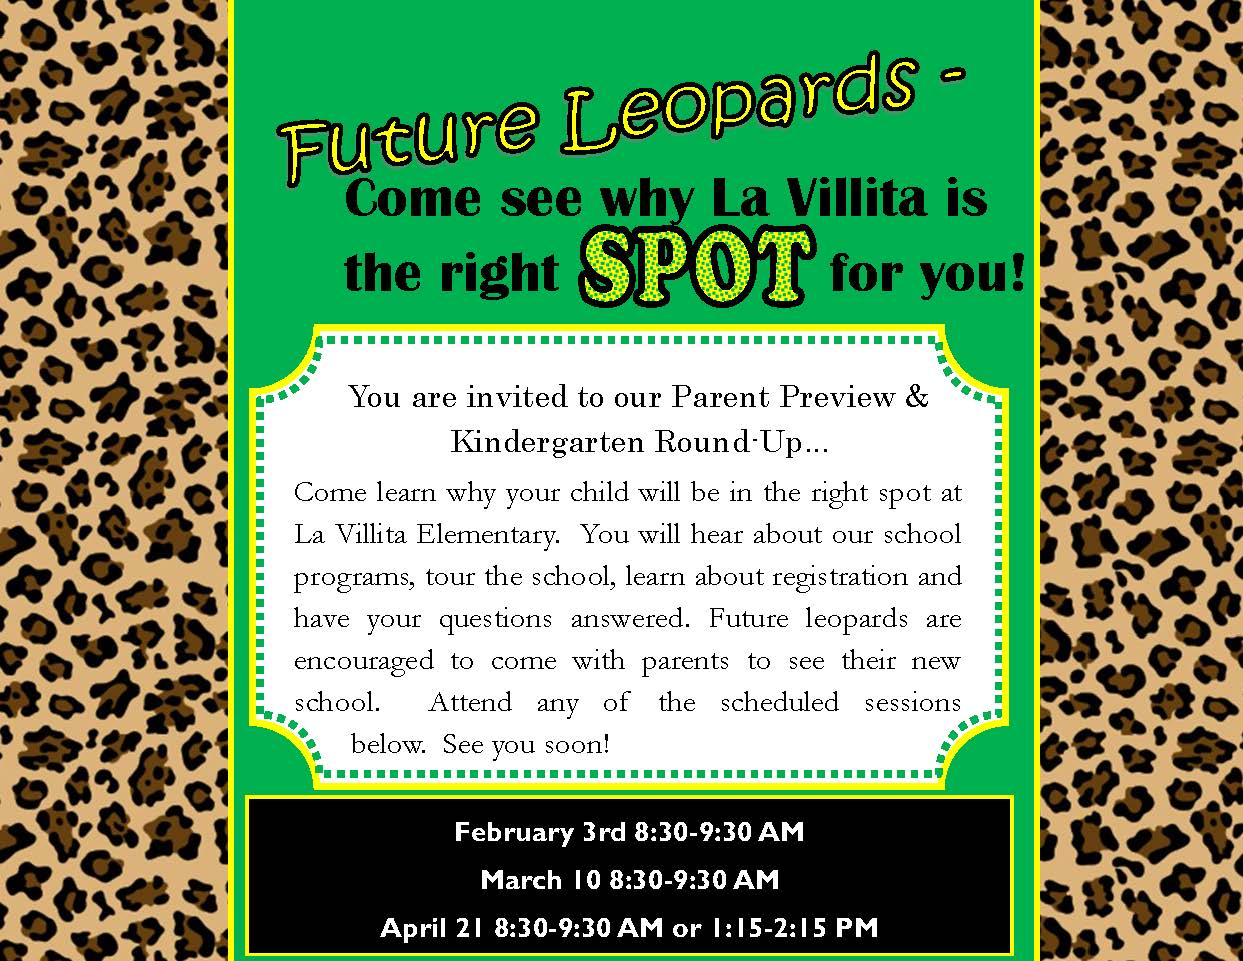 Come learn why your child will be in the right spot at La Villita Elementary. You will hear about our school programs, tour the school, learn about registration and have your questions answered. Future leopards are encouraged to come with parents to see their new school. Attend any of the schedules sessions below. See you soon! February 3 8:30-9:30 AM March 10 8:30-9:30 AM April 21 8:30-9:30 AM or 1:15-2:15 PM